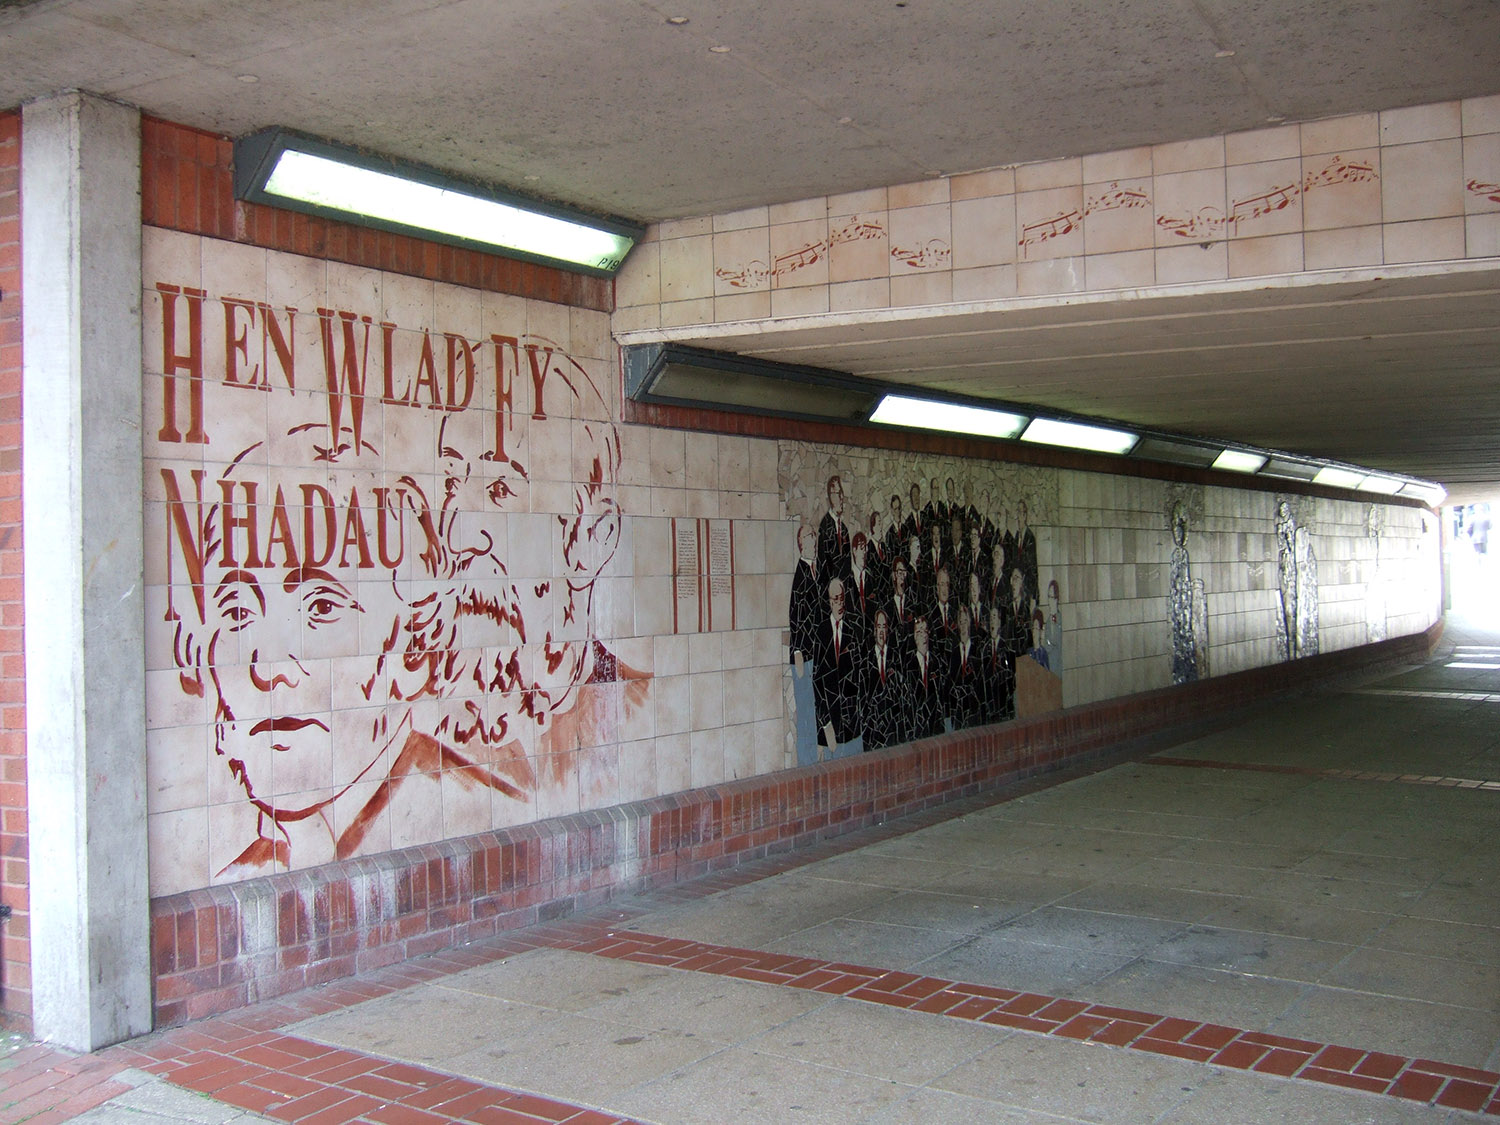 Art and graphics can help to make alleys, walkways and underpasses feel safe